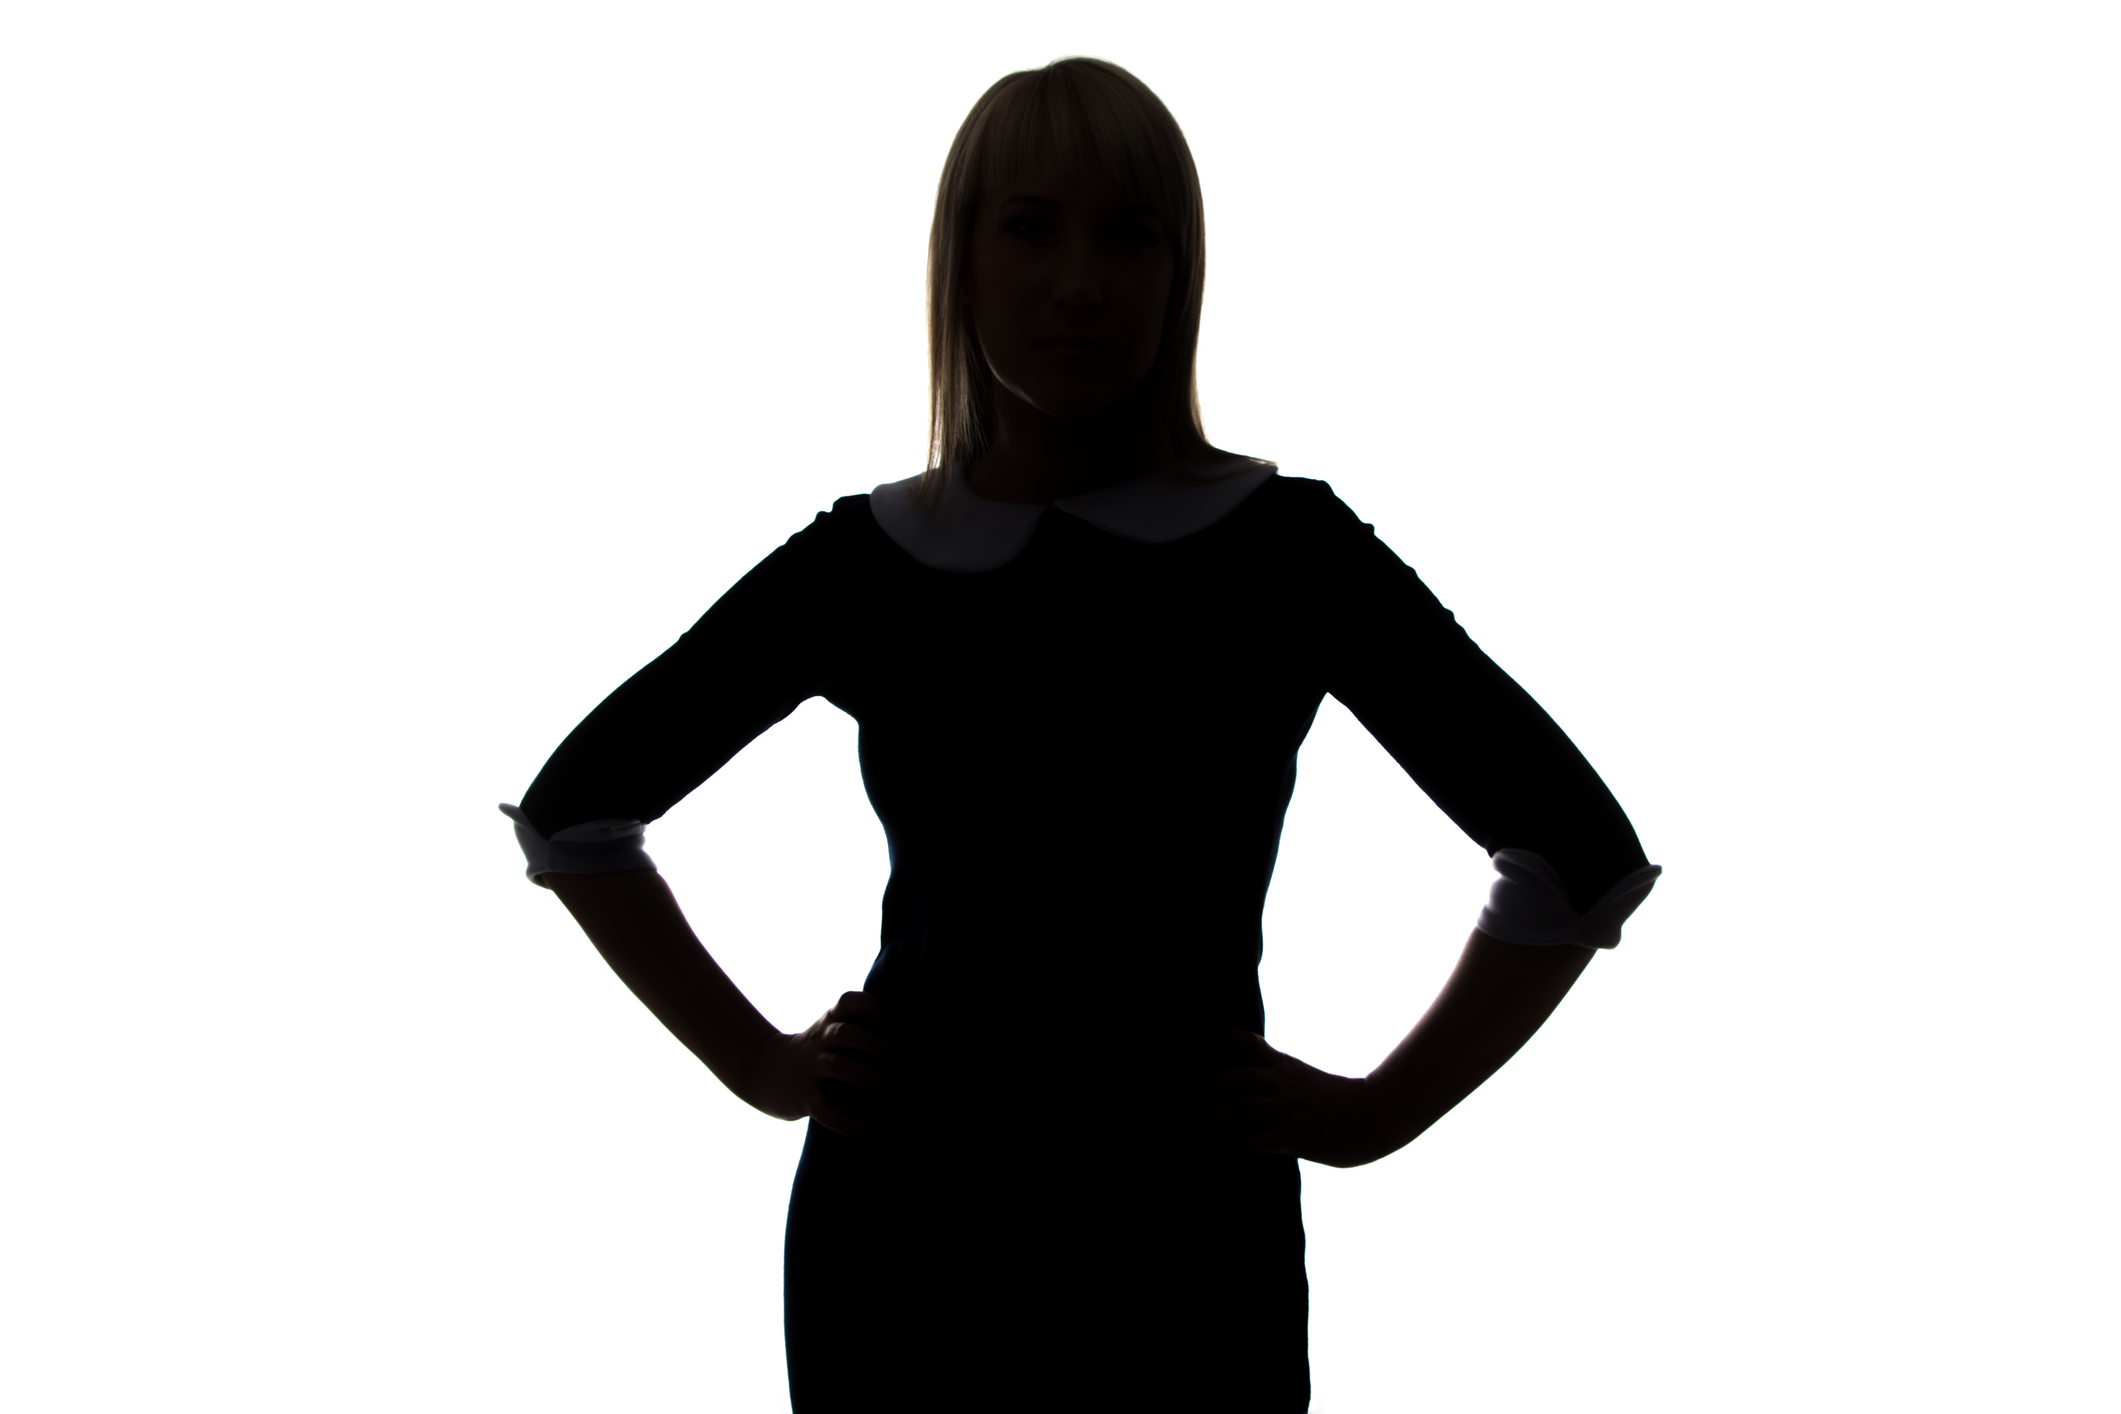 2121x1414 Silhouette Of Young Woman With Hands On Hip